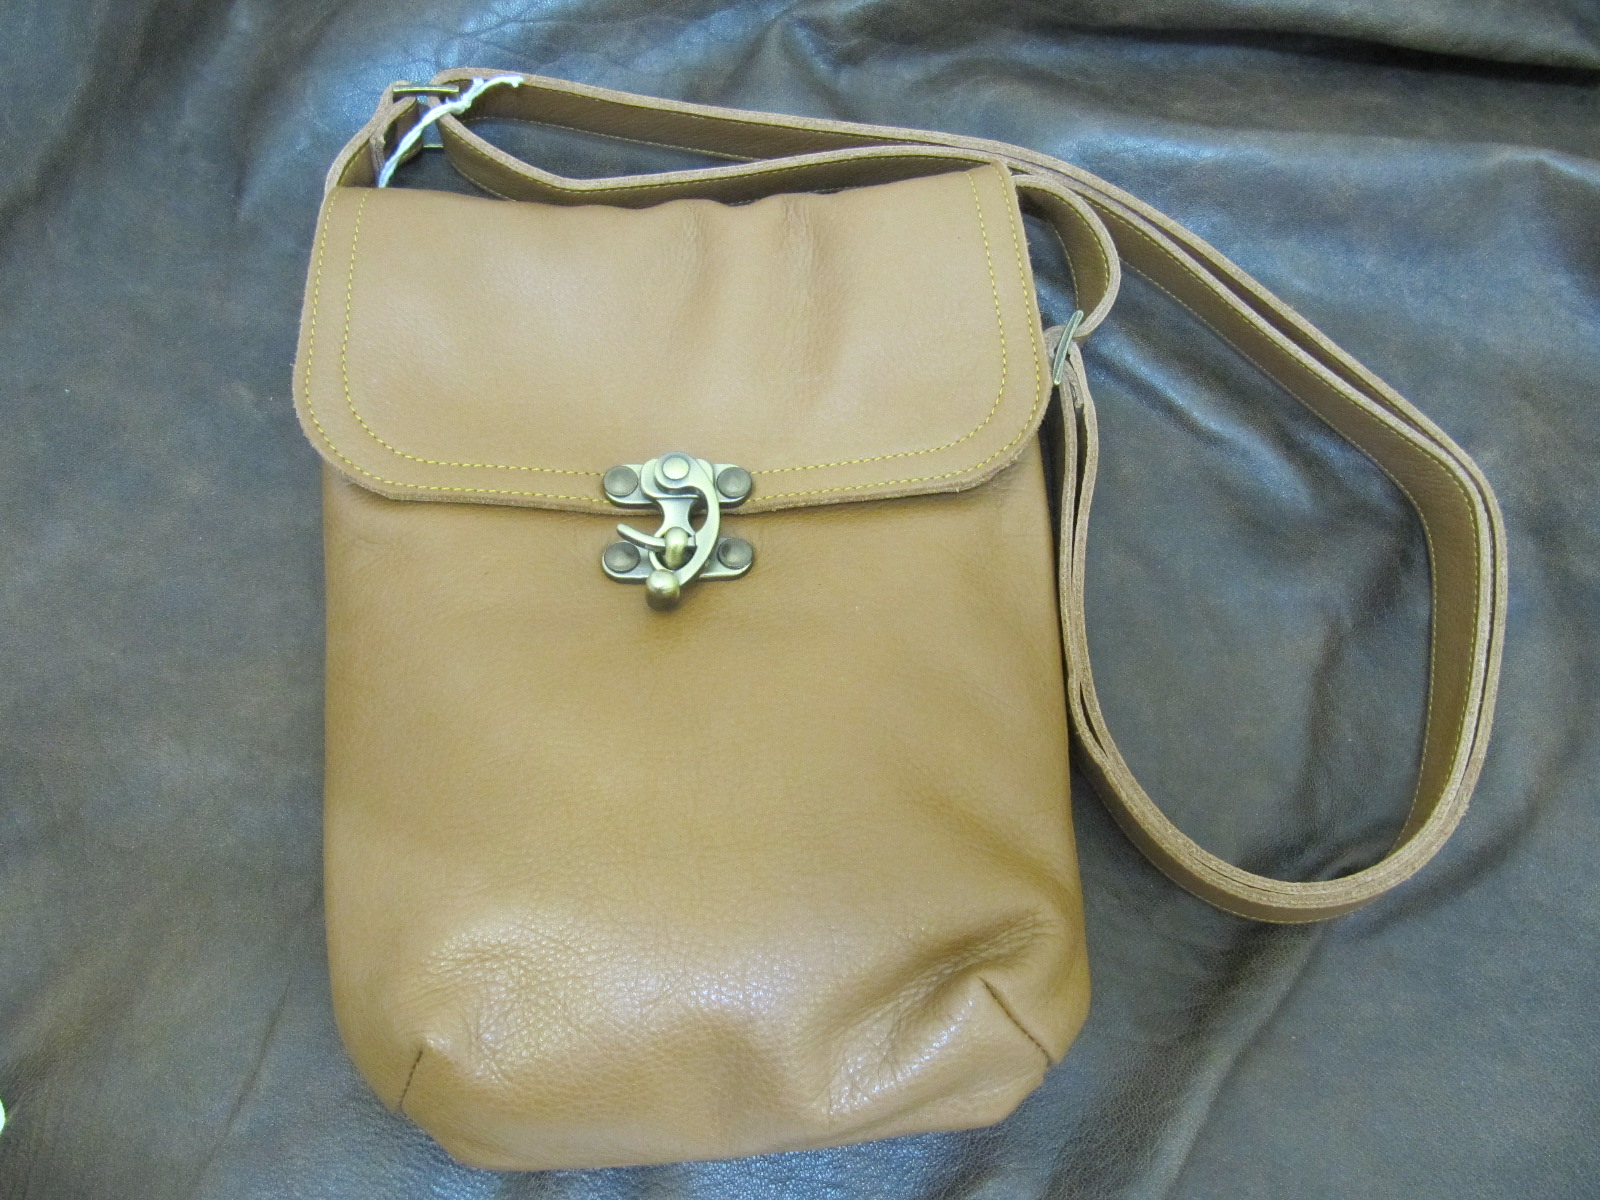 Small messenger bag in tan leather